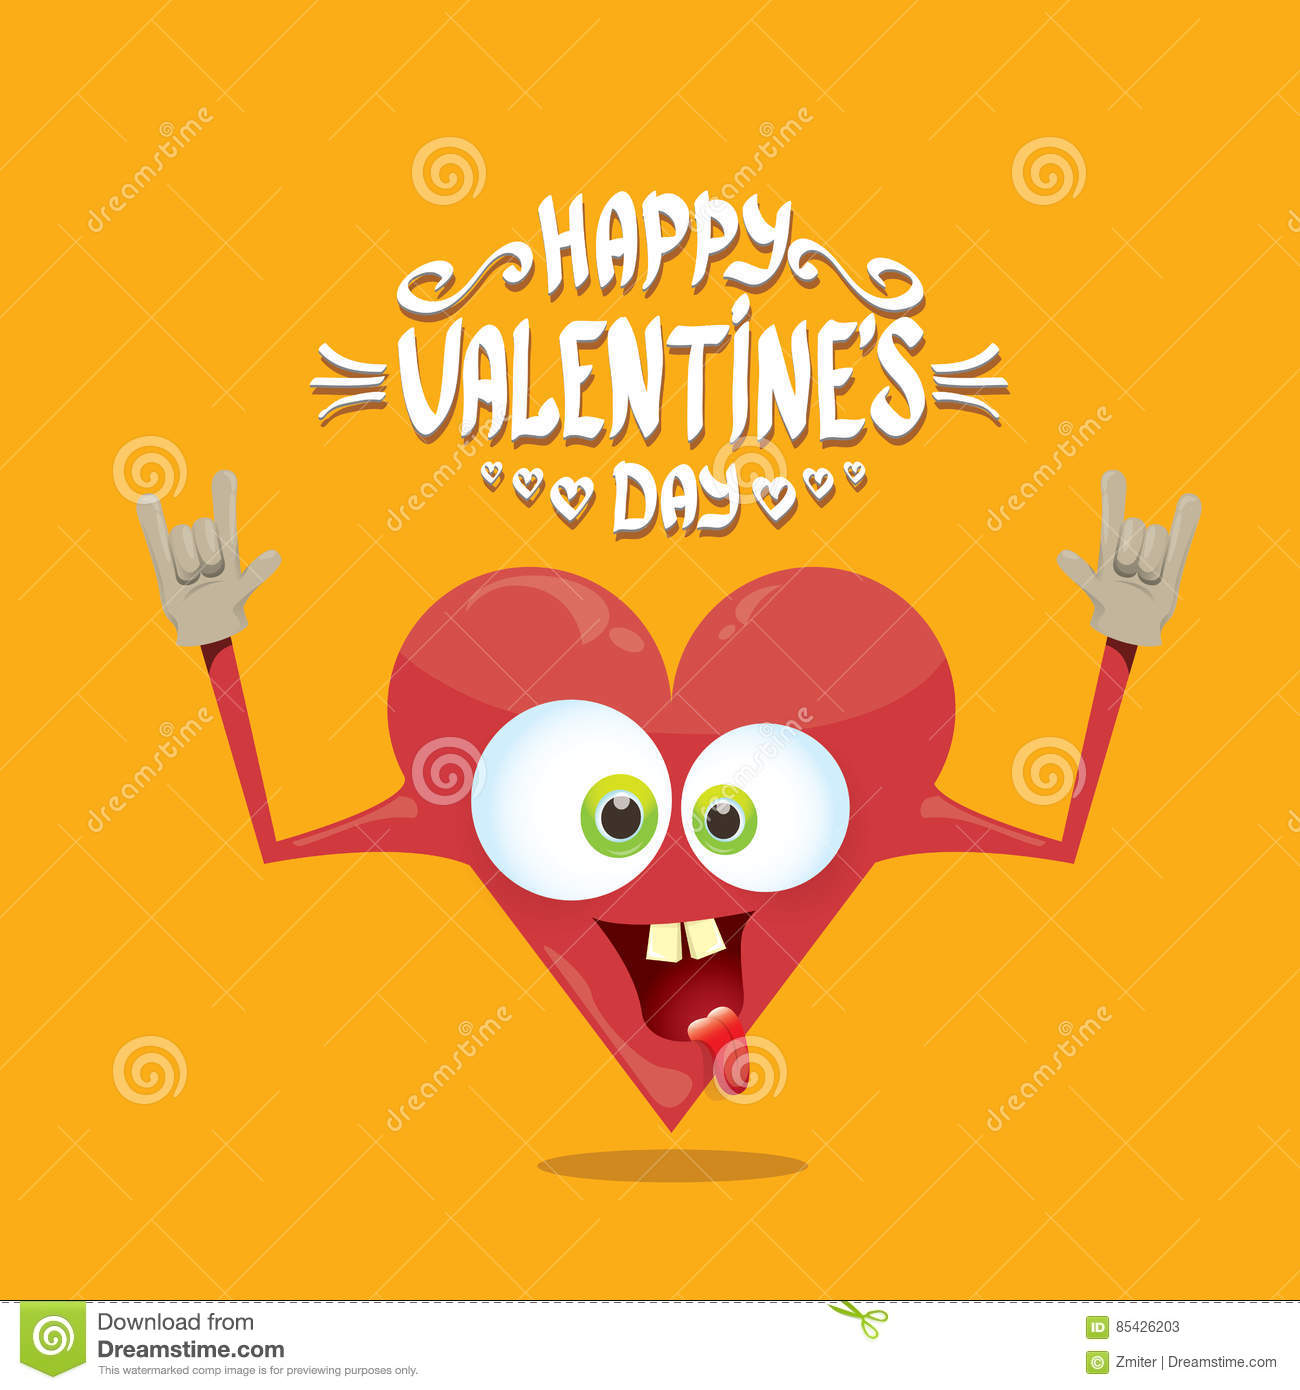 Vector valentines day card with cartoon heart